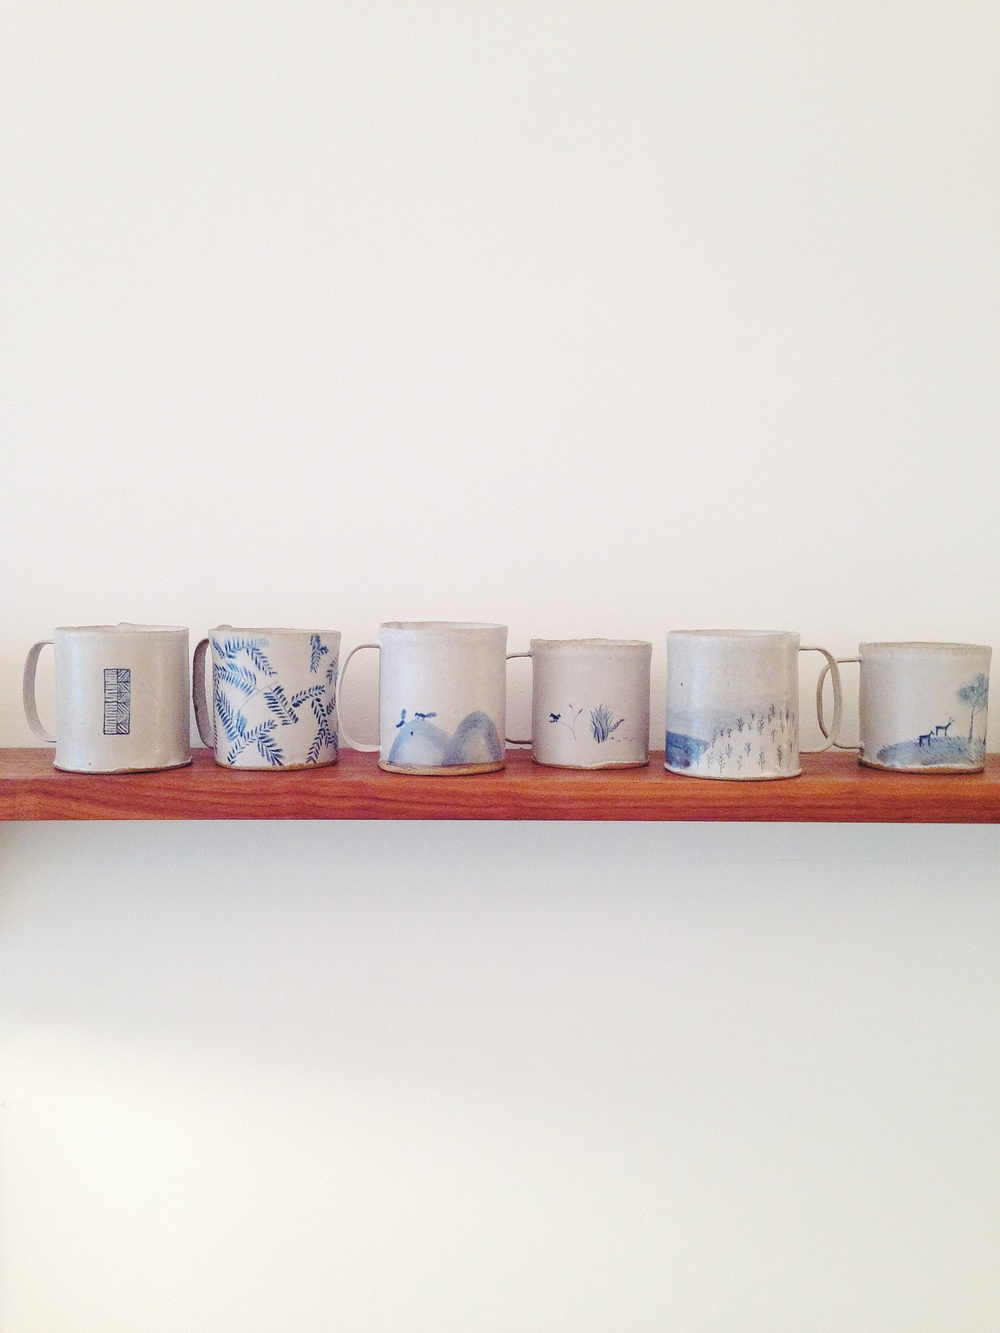 hand-painted BDDW ceramic mugs are now available at our store